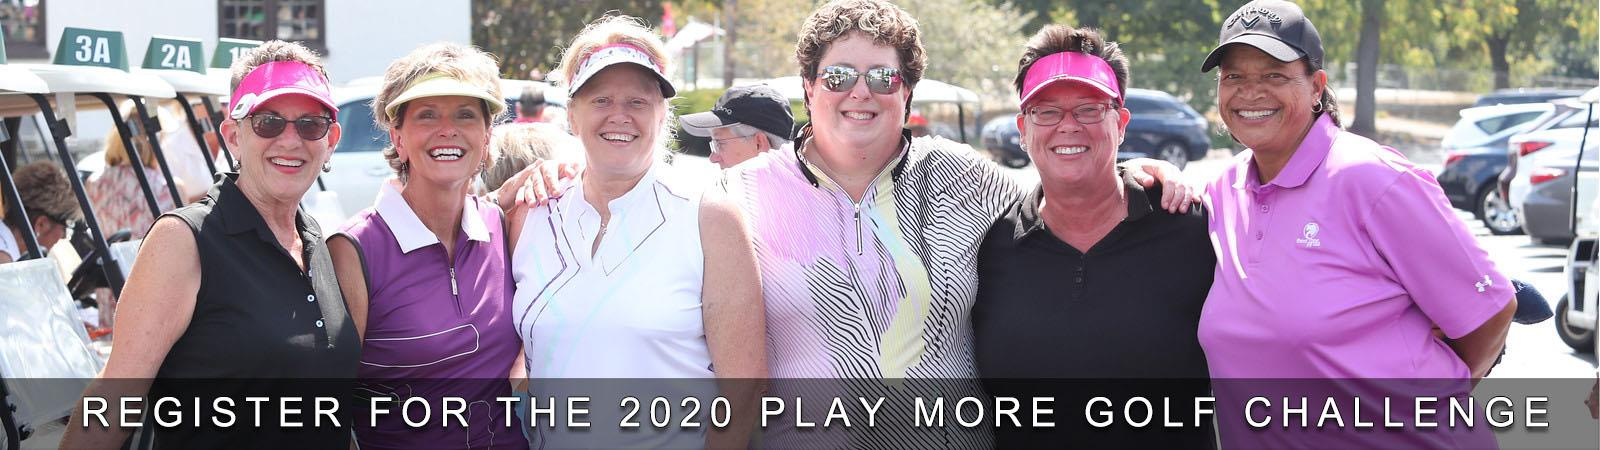 2020_Challenge_to_Play_More_Golf